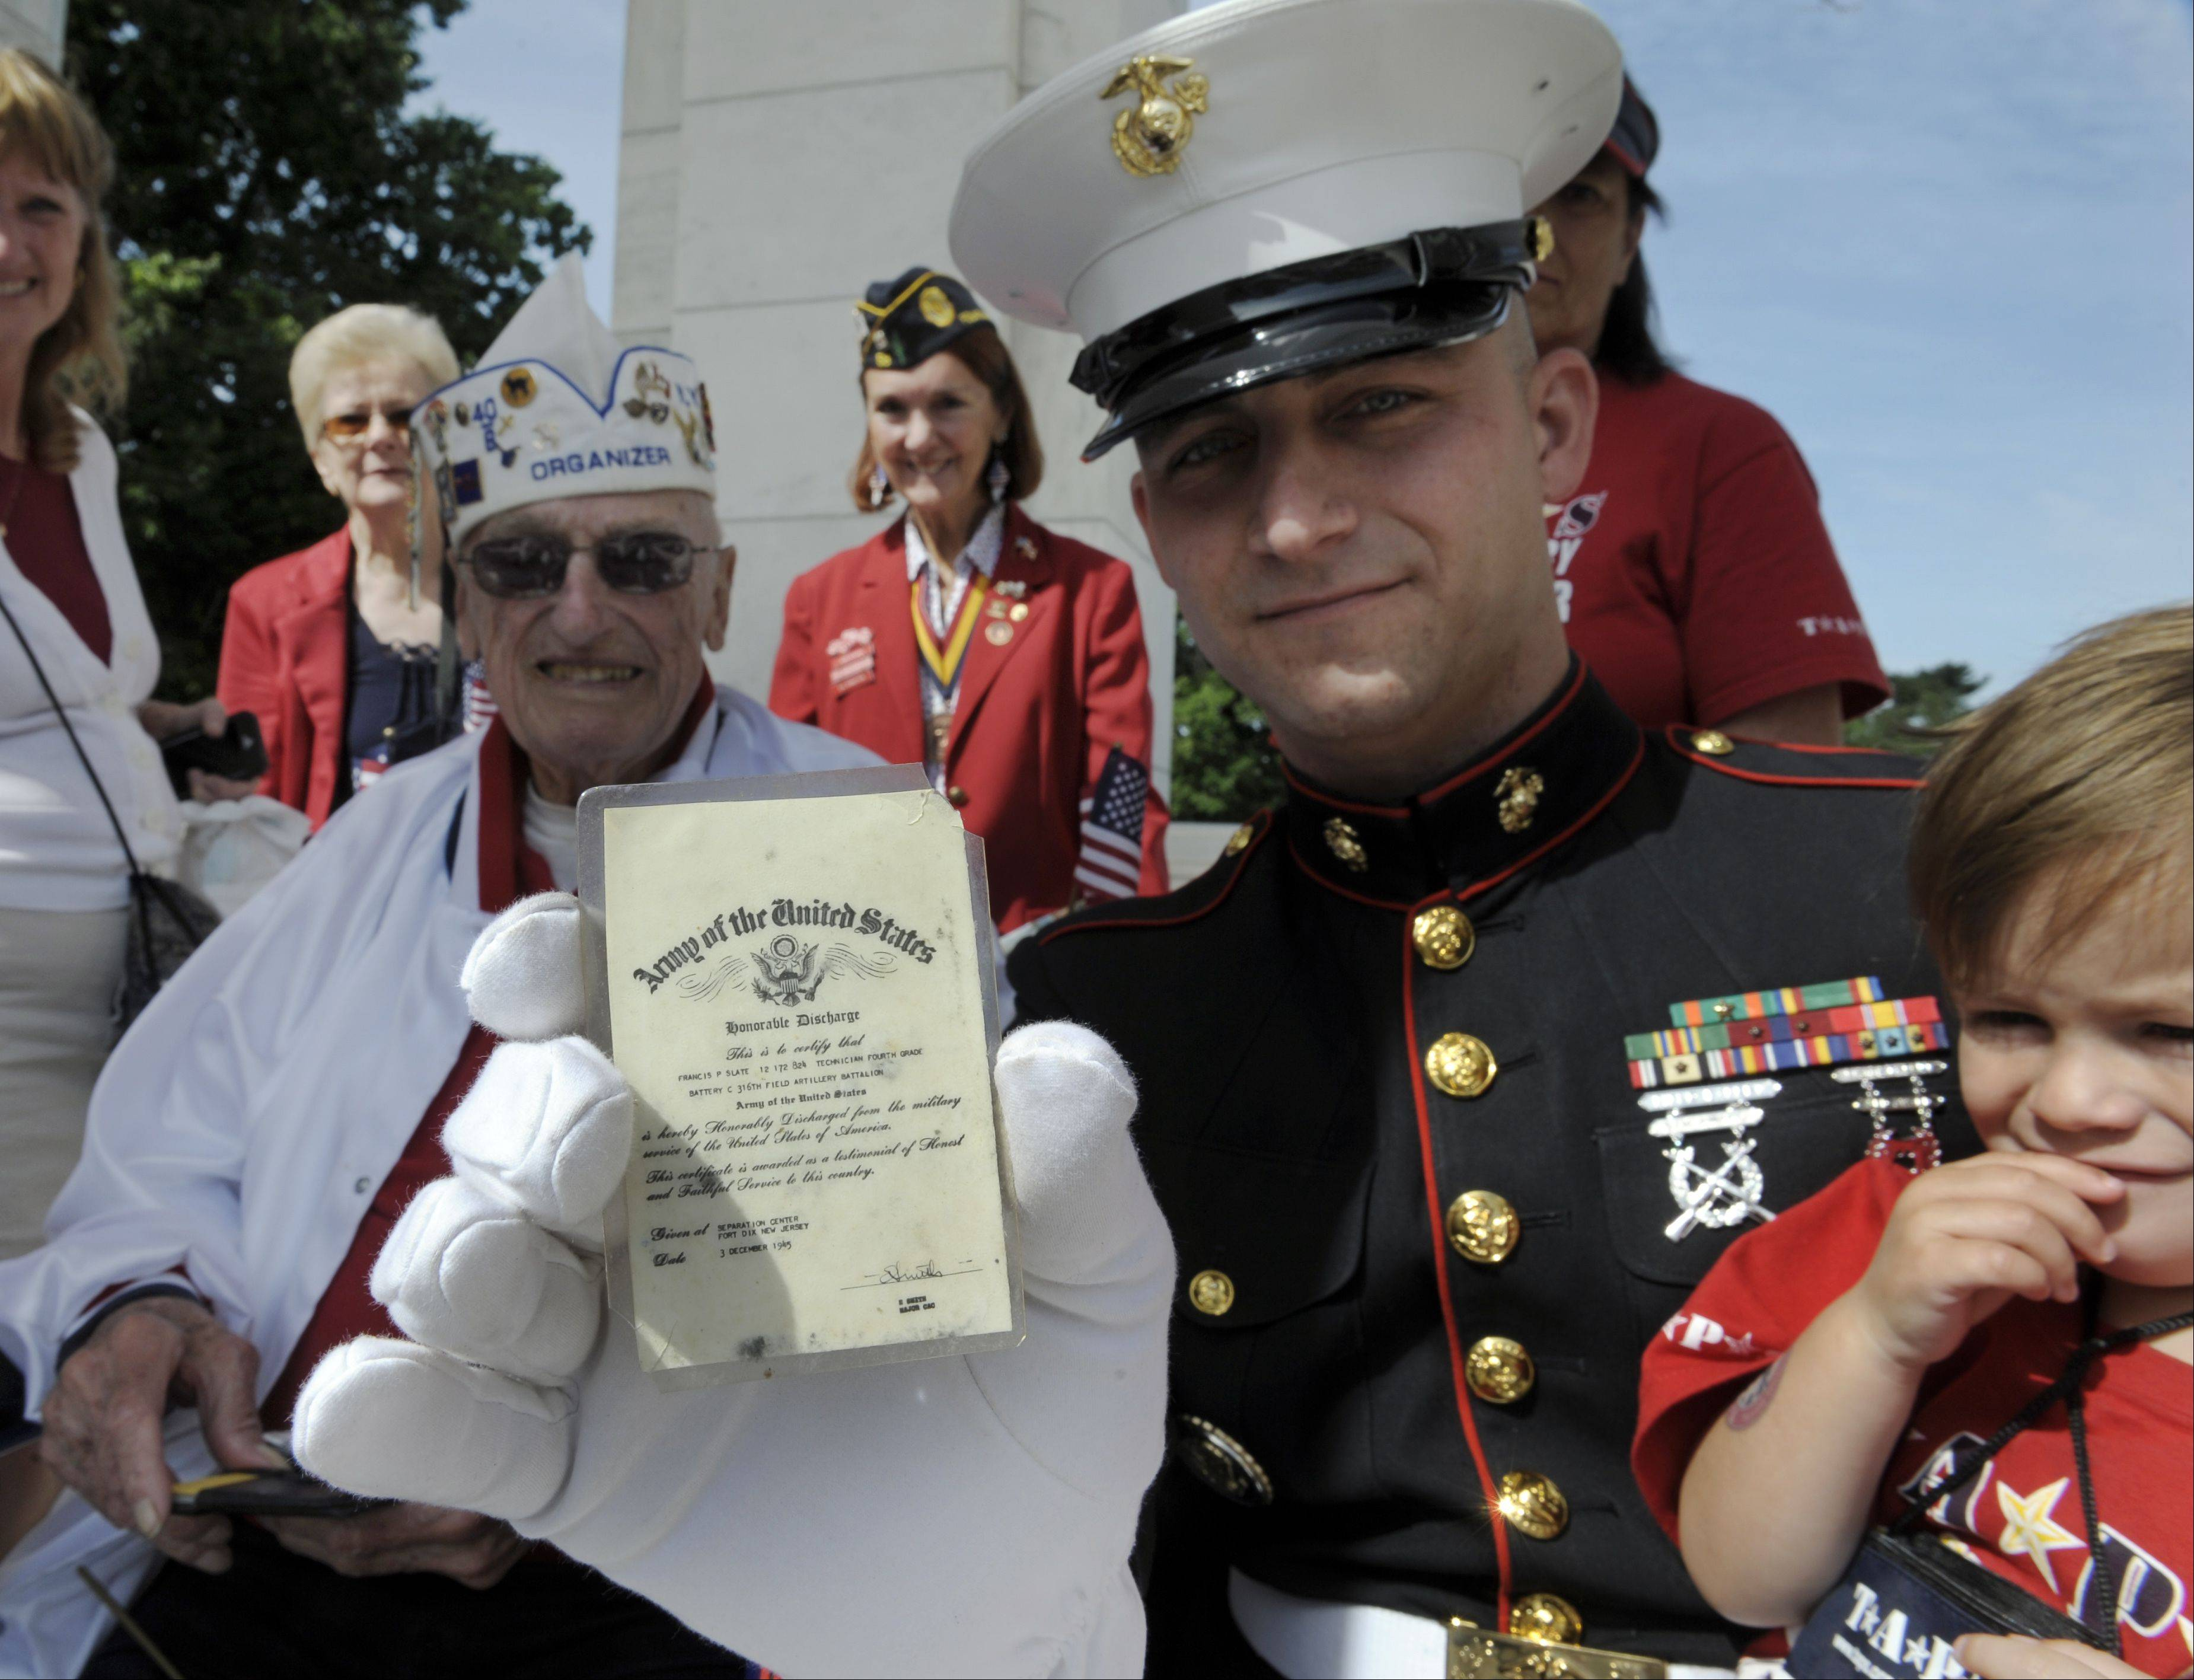 Marine Staff Sgt. Travis Hassell, center, and his son Issac show off Francis Slate's, left, Honorable Discharge Card from the U.S. Army Dec. 3, 1945, as they wait for President Barack Obama to deliver his Memorial Day address at Arlington National Cemetery in Arlington, Va., Monday, May 27, 2013.